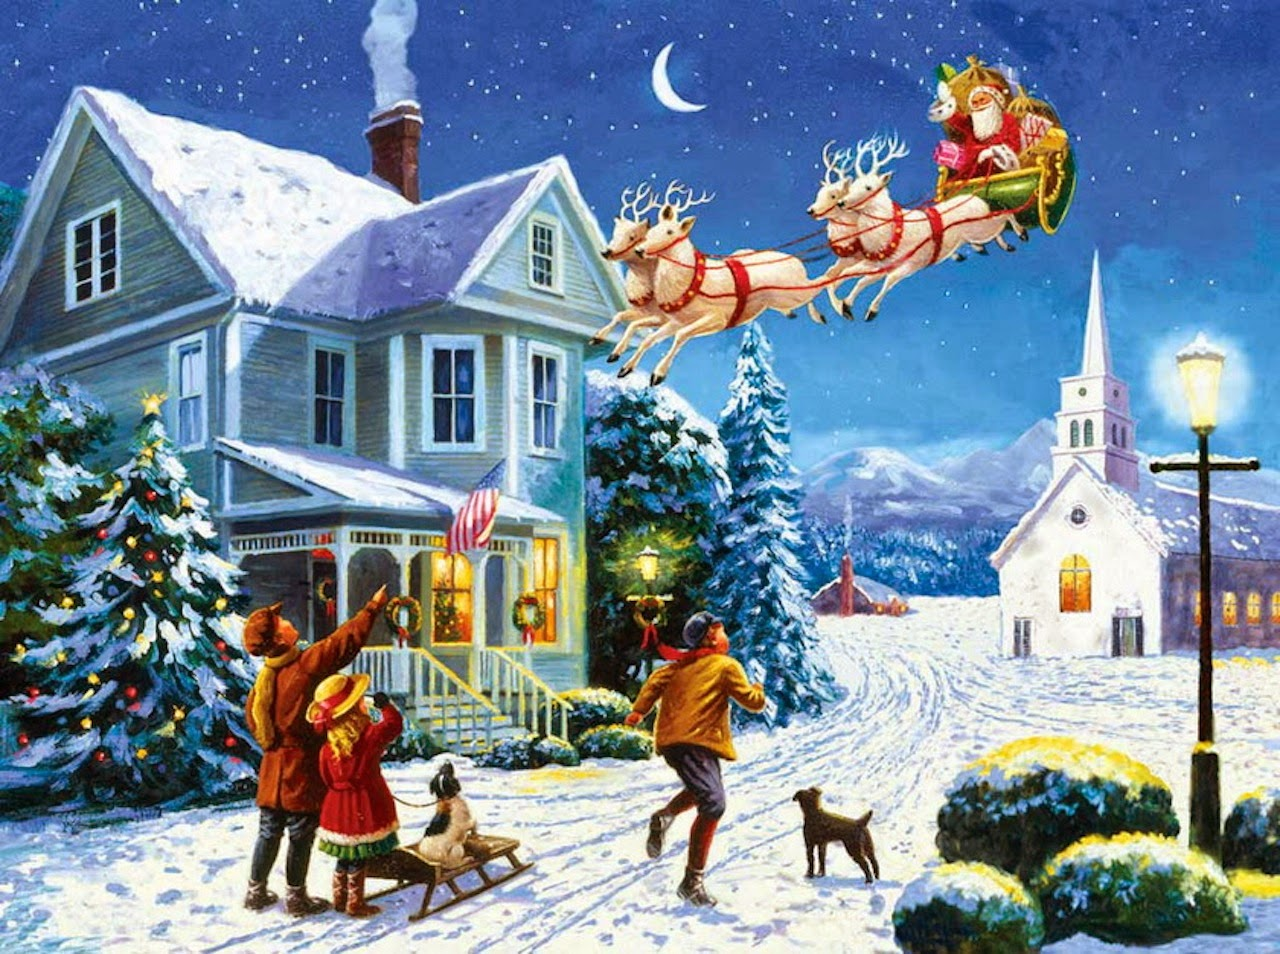 Santa-Arrival-to-snow-town-people-welcome-cartoon-drawing-image-picture-1280x954.jpg